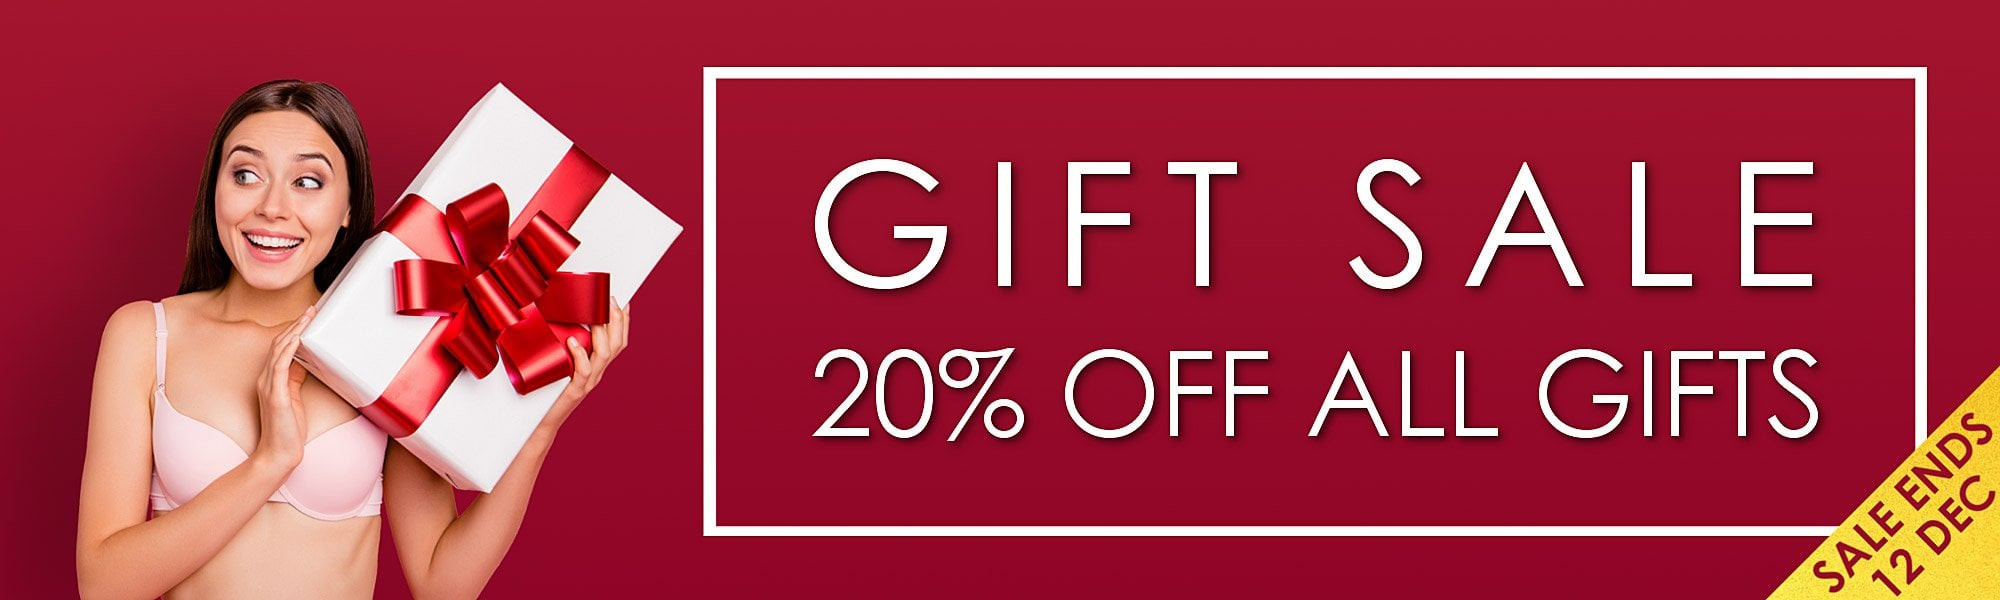 20% OFF GIFTS SALE